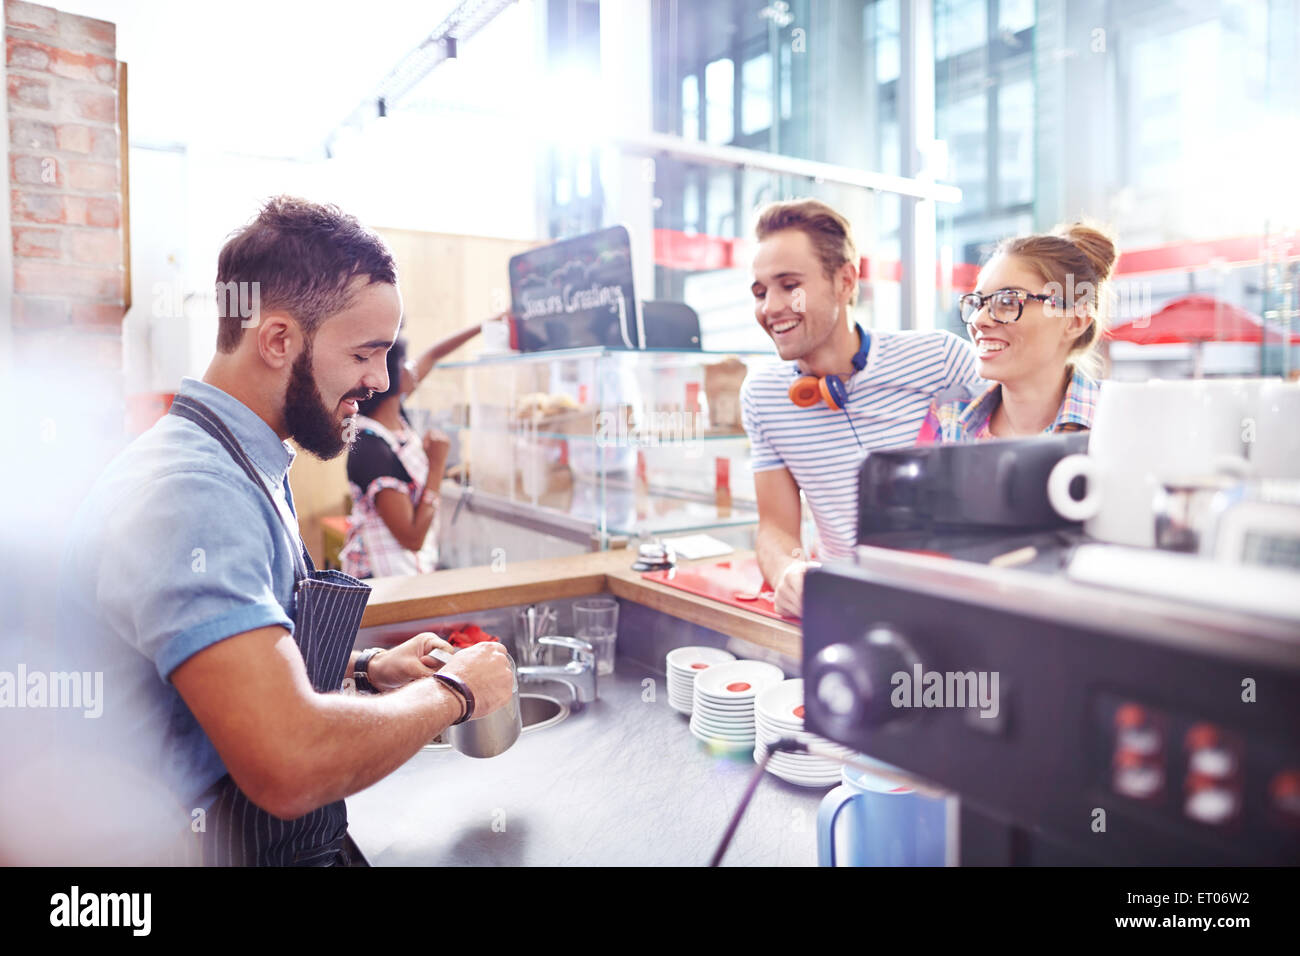 Customers watching barista make coffee in cafe - Stock Image